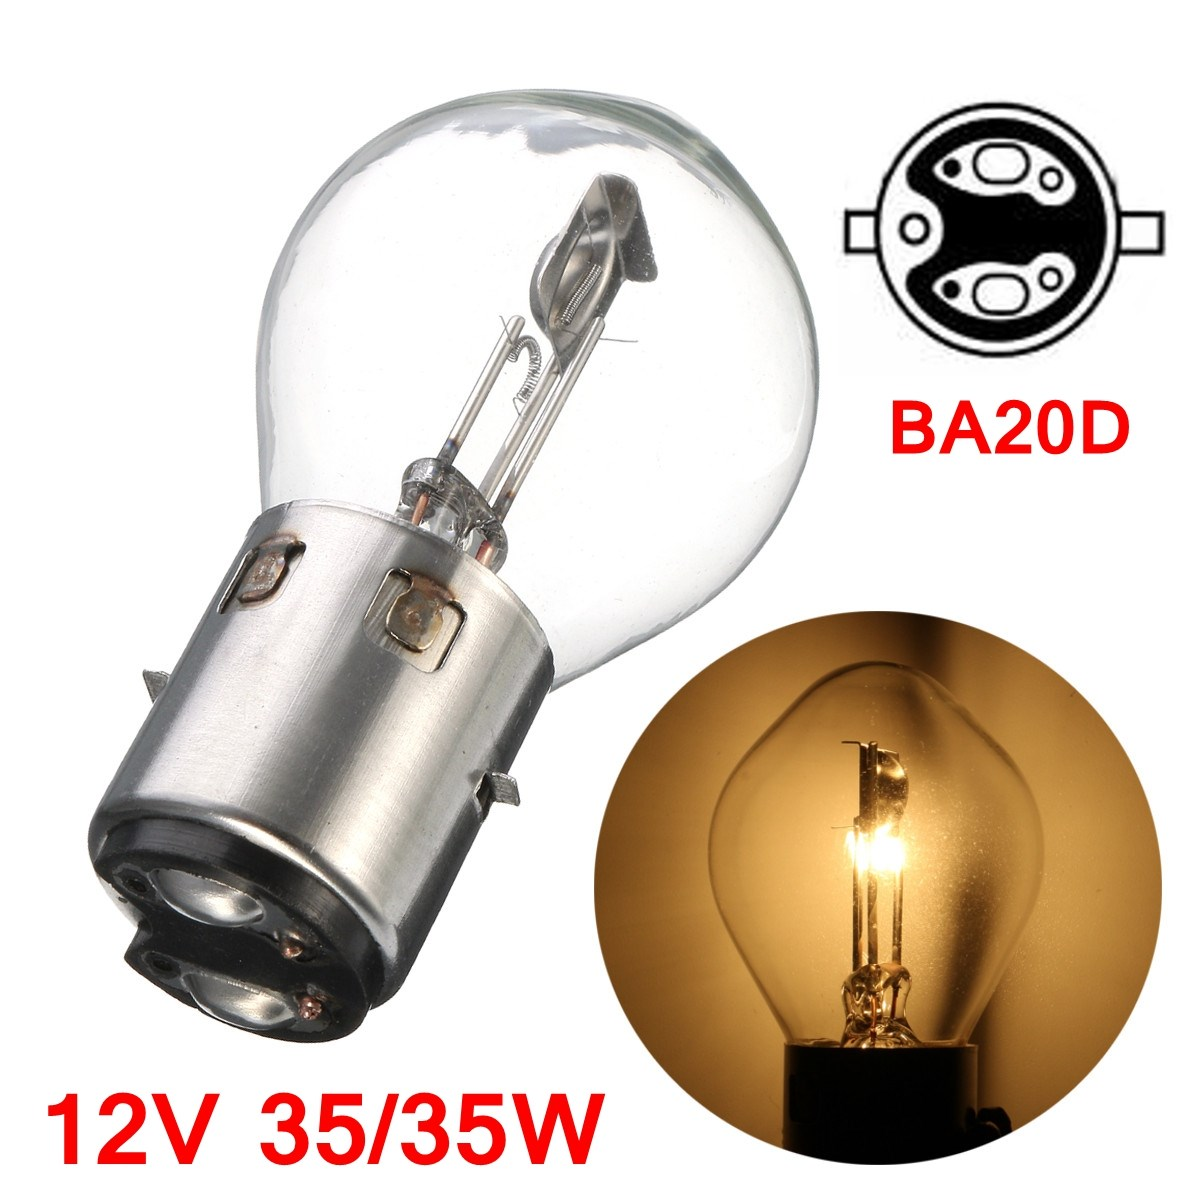 BA20d Motorcycle ATV Moped Scooter Headlight Lamp Bulb 12v 35 35w Hi-Low beam BA20d Quartz Metal Yellow